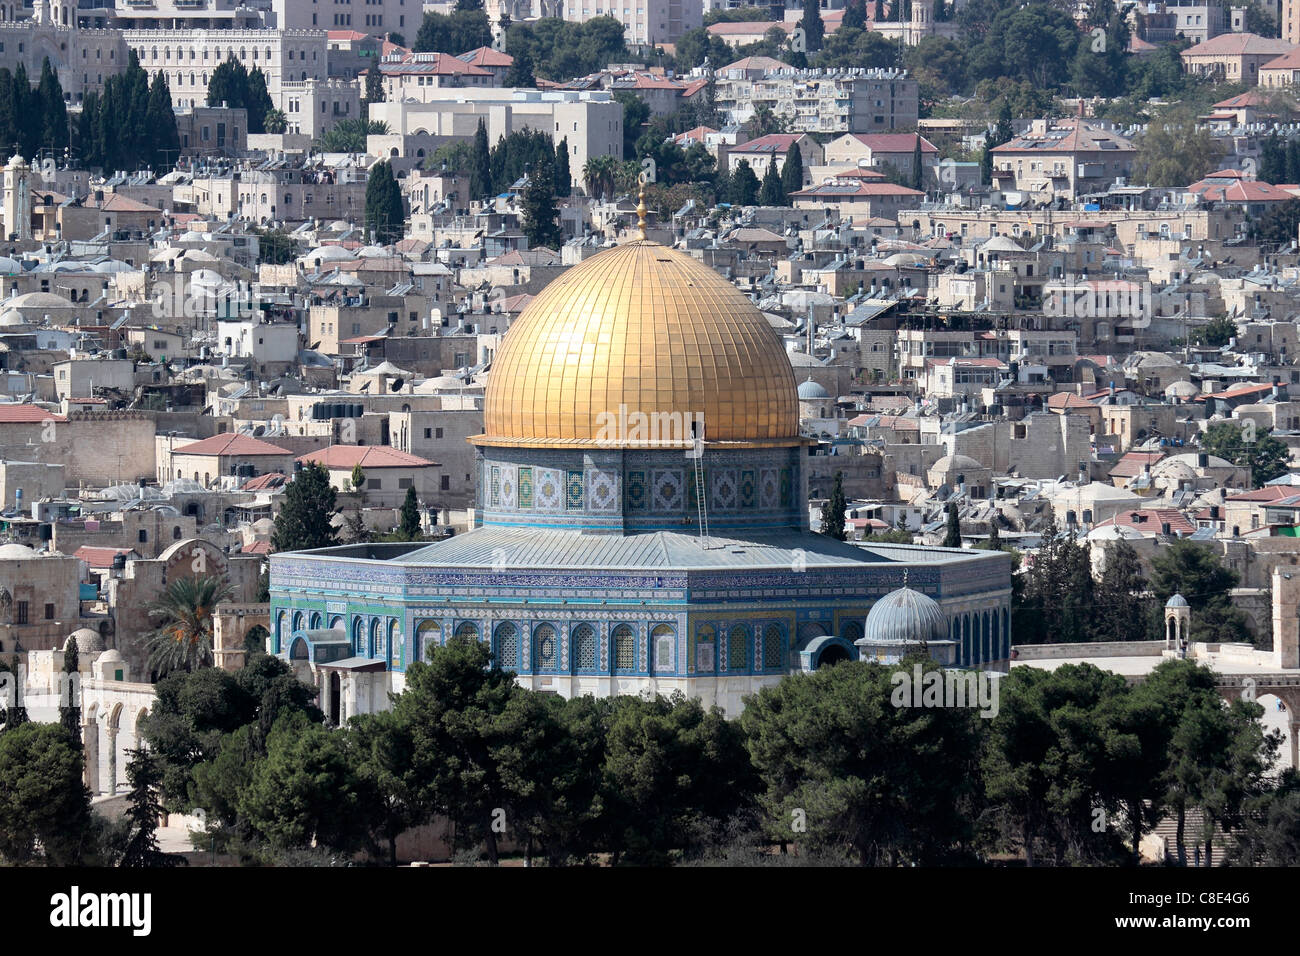 The Dome of the Rock, Temple Mount, Jerusalem, Israel Stock Photo